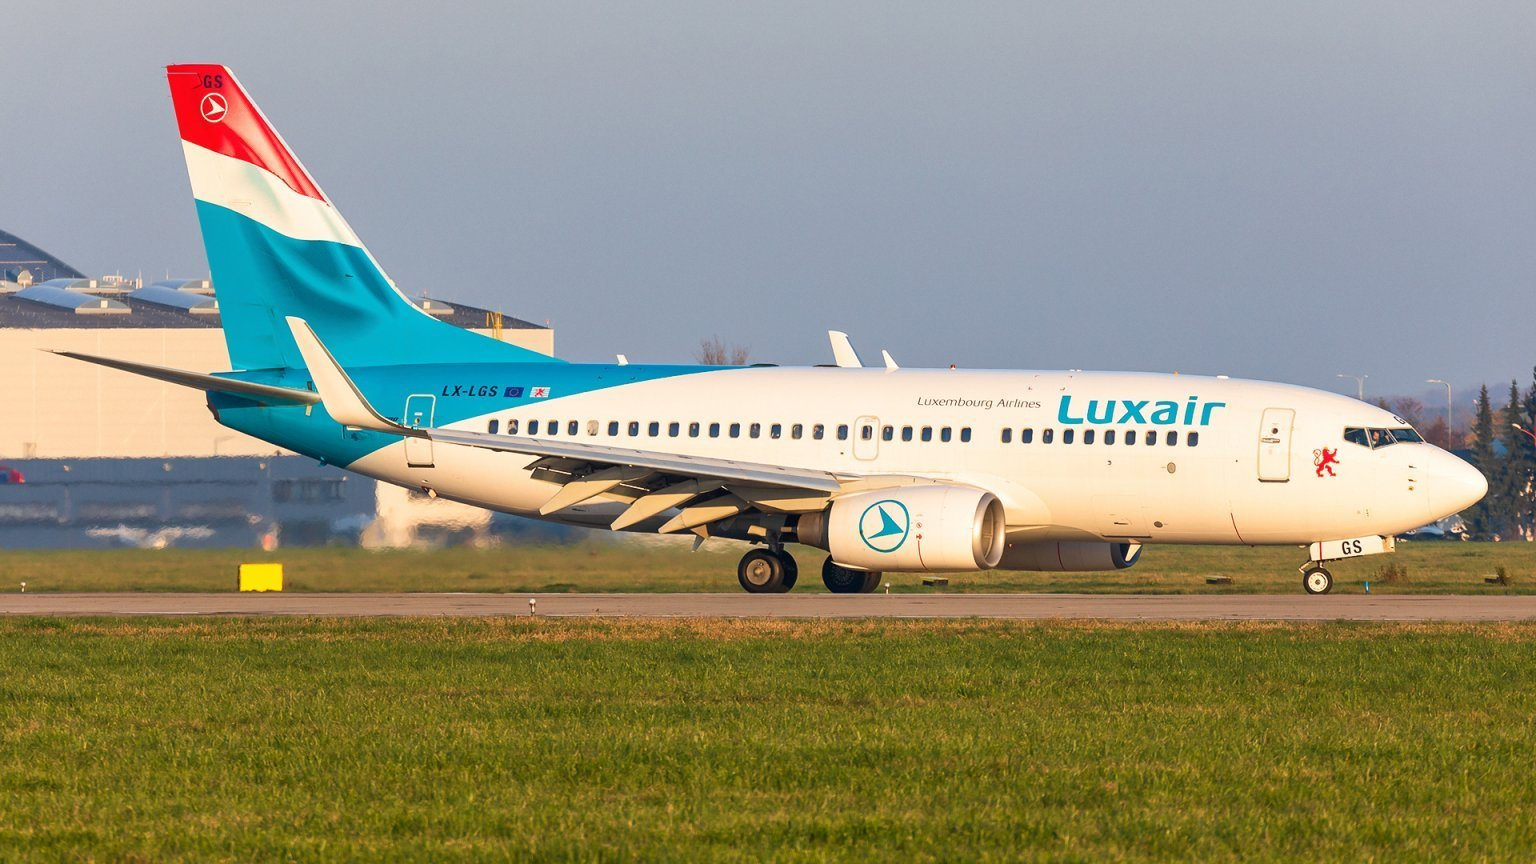 JOB AIR Technic welcomed the new customer - LUXAIR